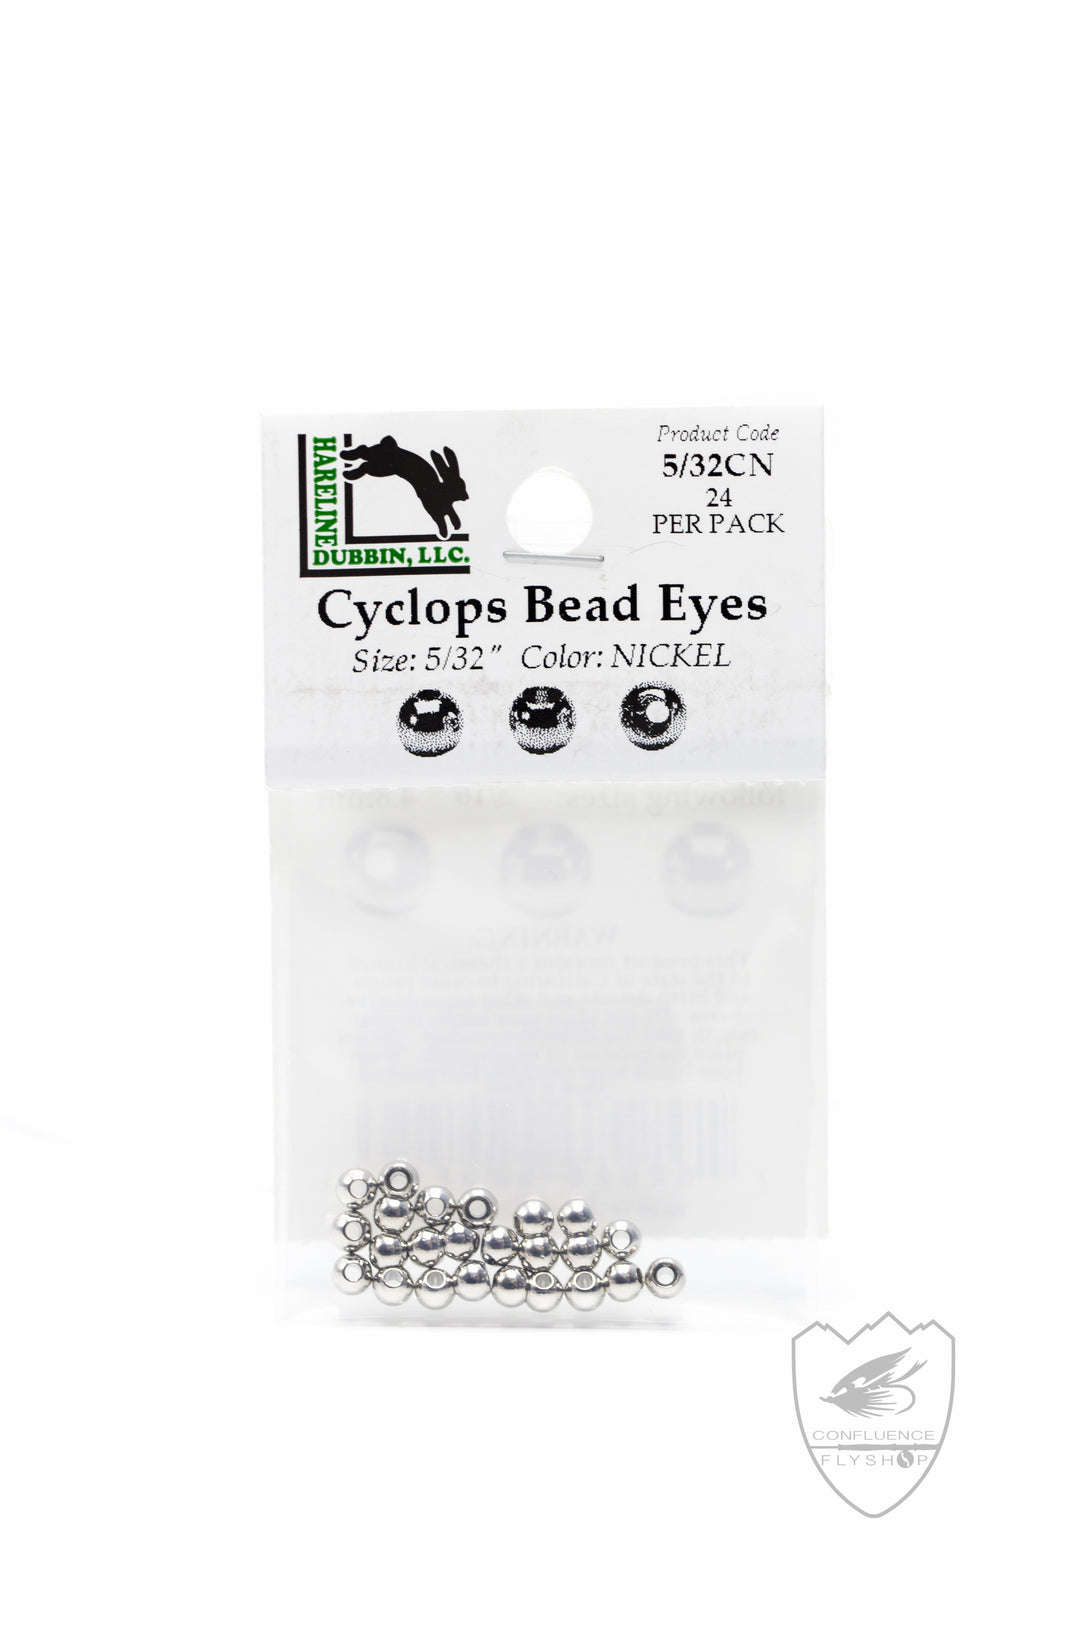 Hareline Cyclops Bead Eyes,Beads,HARELINE DUBBIN INC.-Confluence Fly Shop